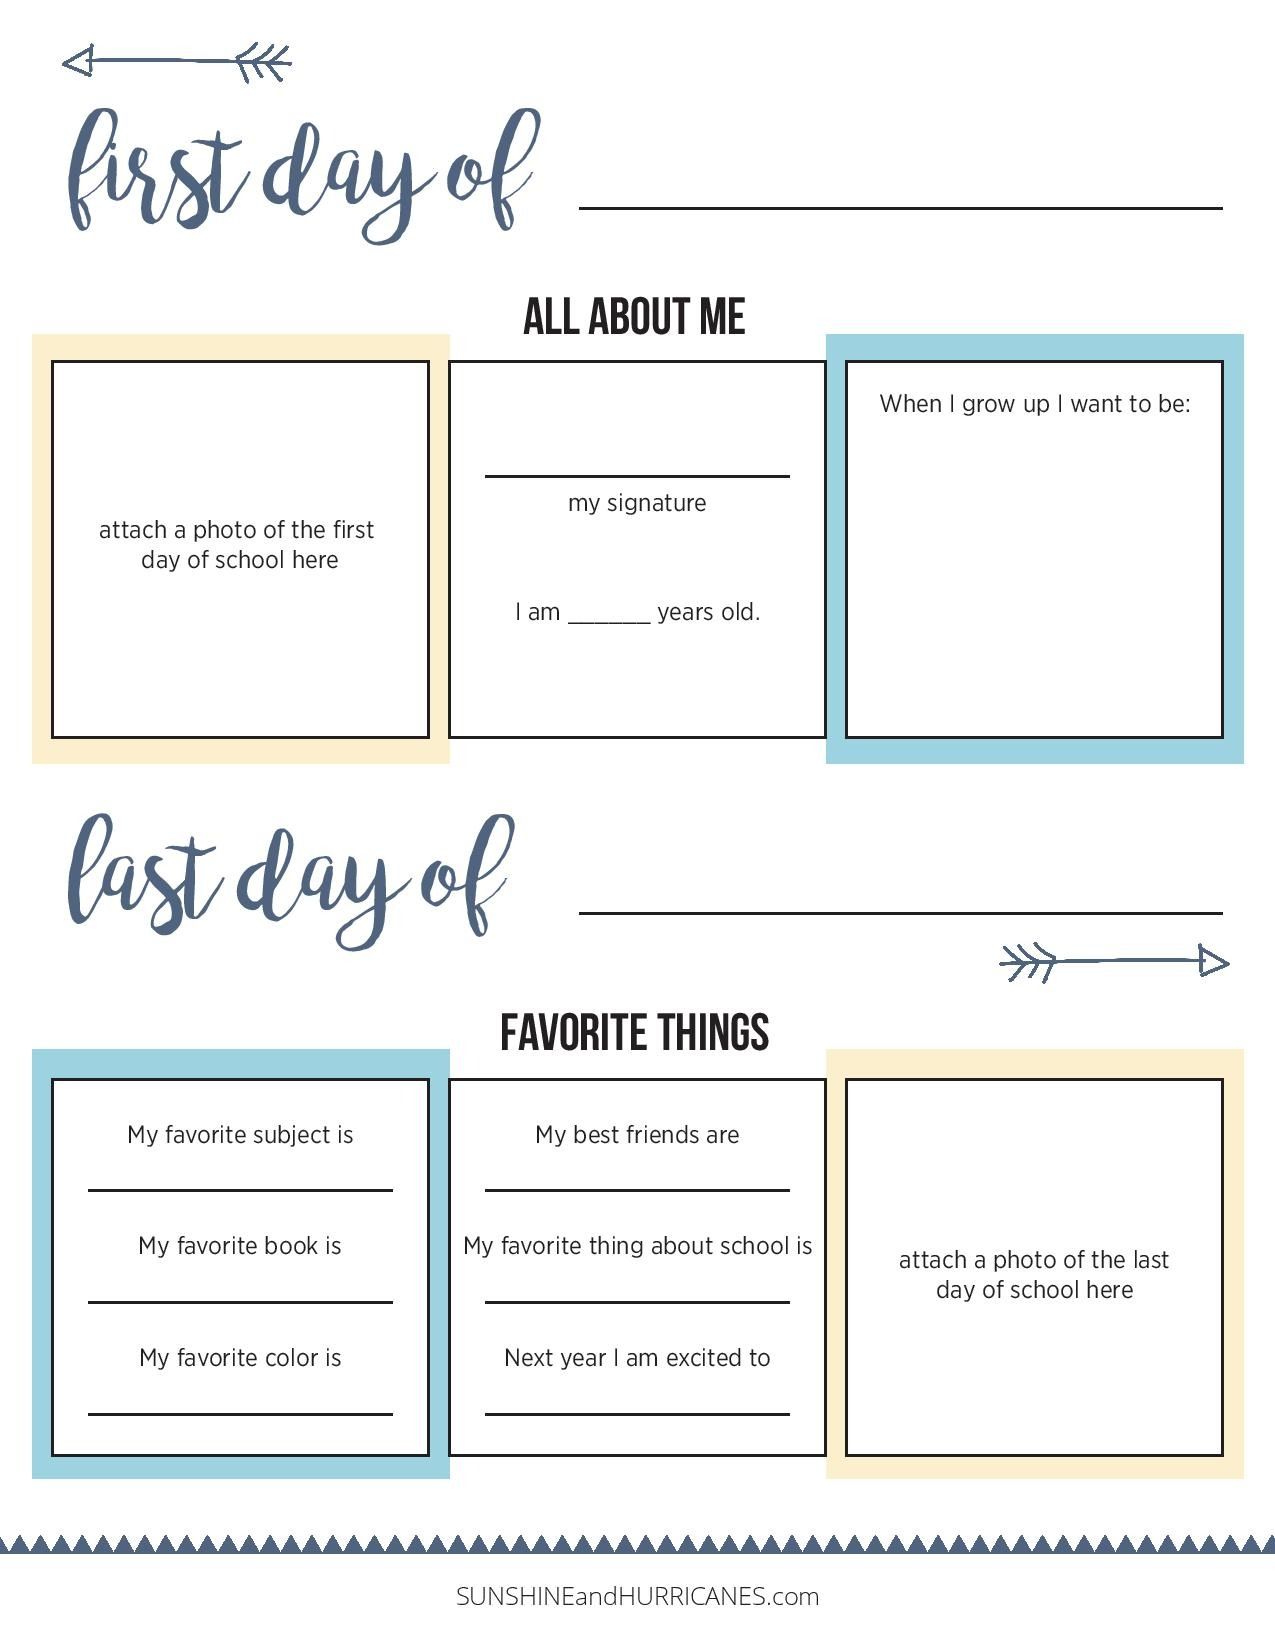 image relating to First Day of School Printable referred to as All Around Me Very first Working day Of Higher education Printable Questionnaire